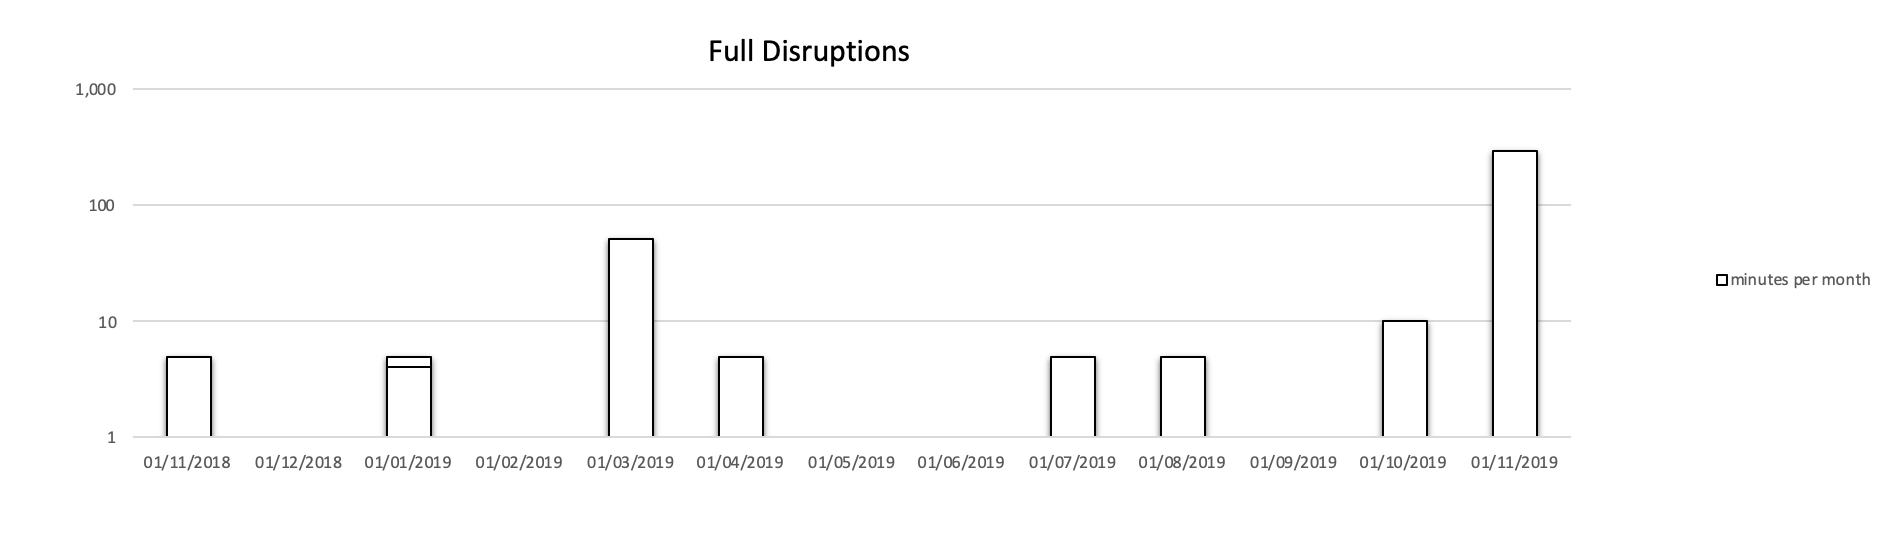 Full Disruptions in minutes (logarithmic scale).